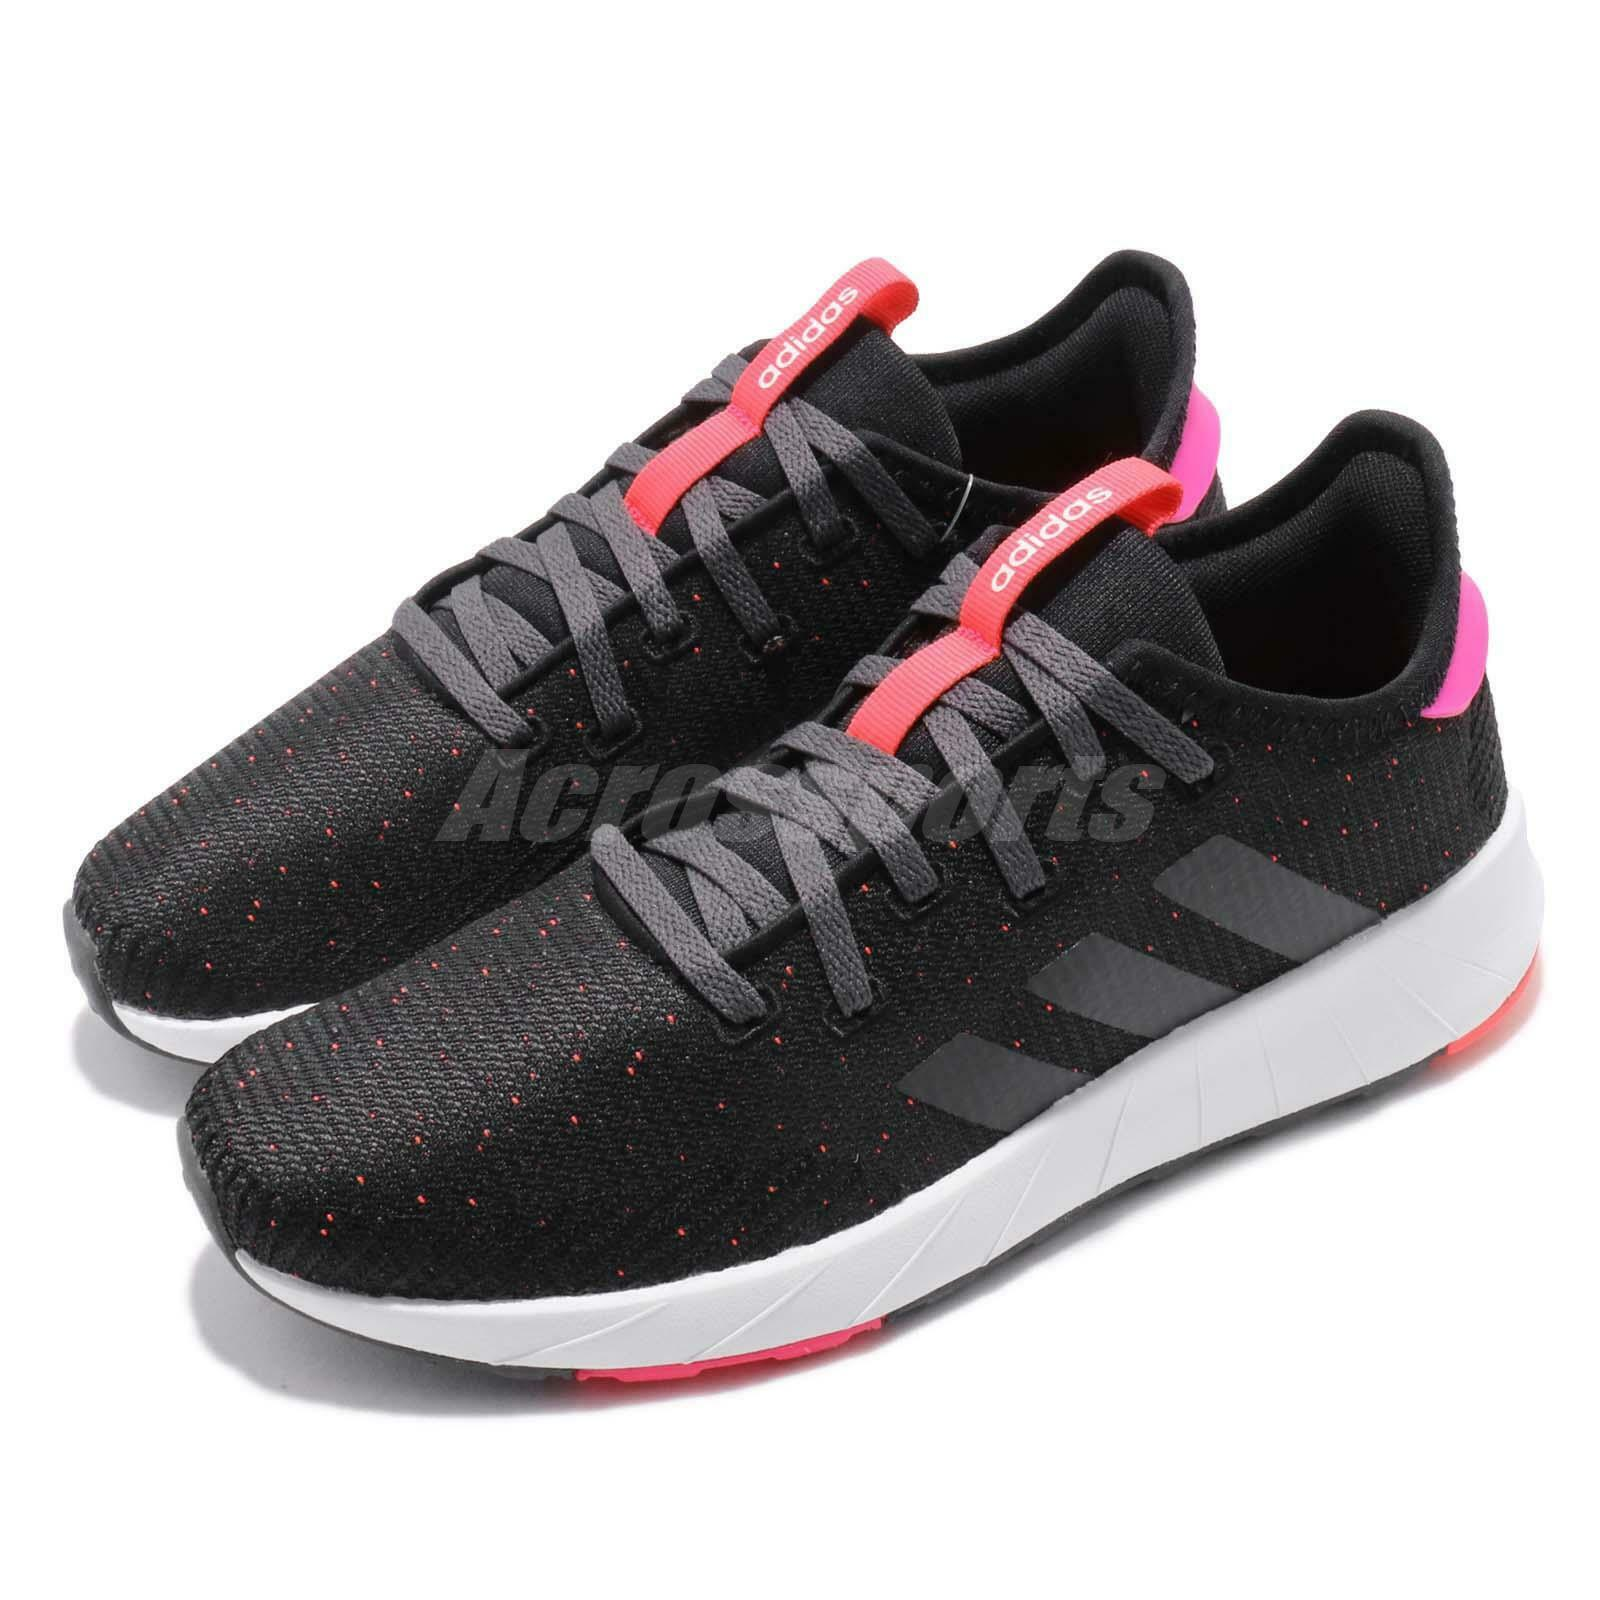 Adidas Questar X BYD Black Grey Pink White Women Running shoes Sneakers F34649